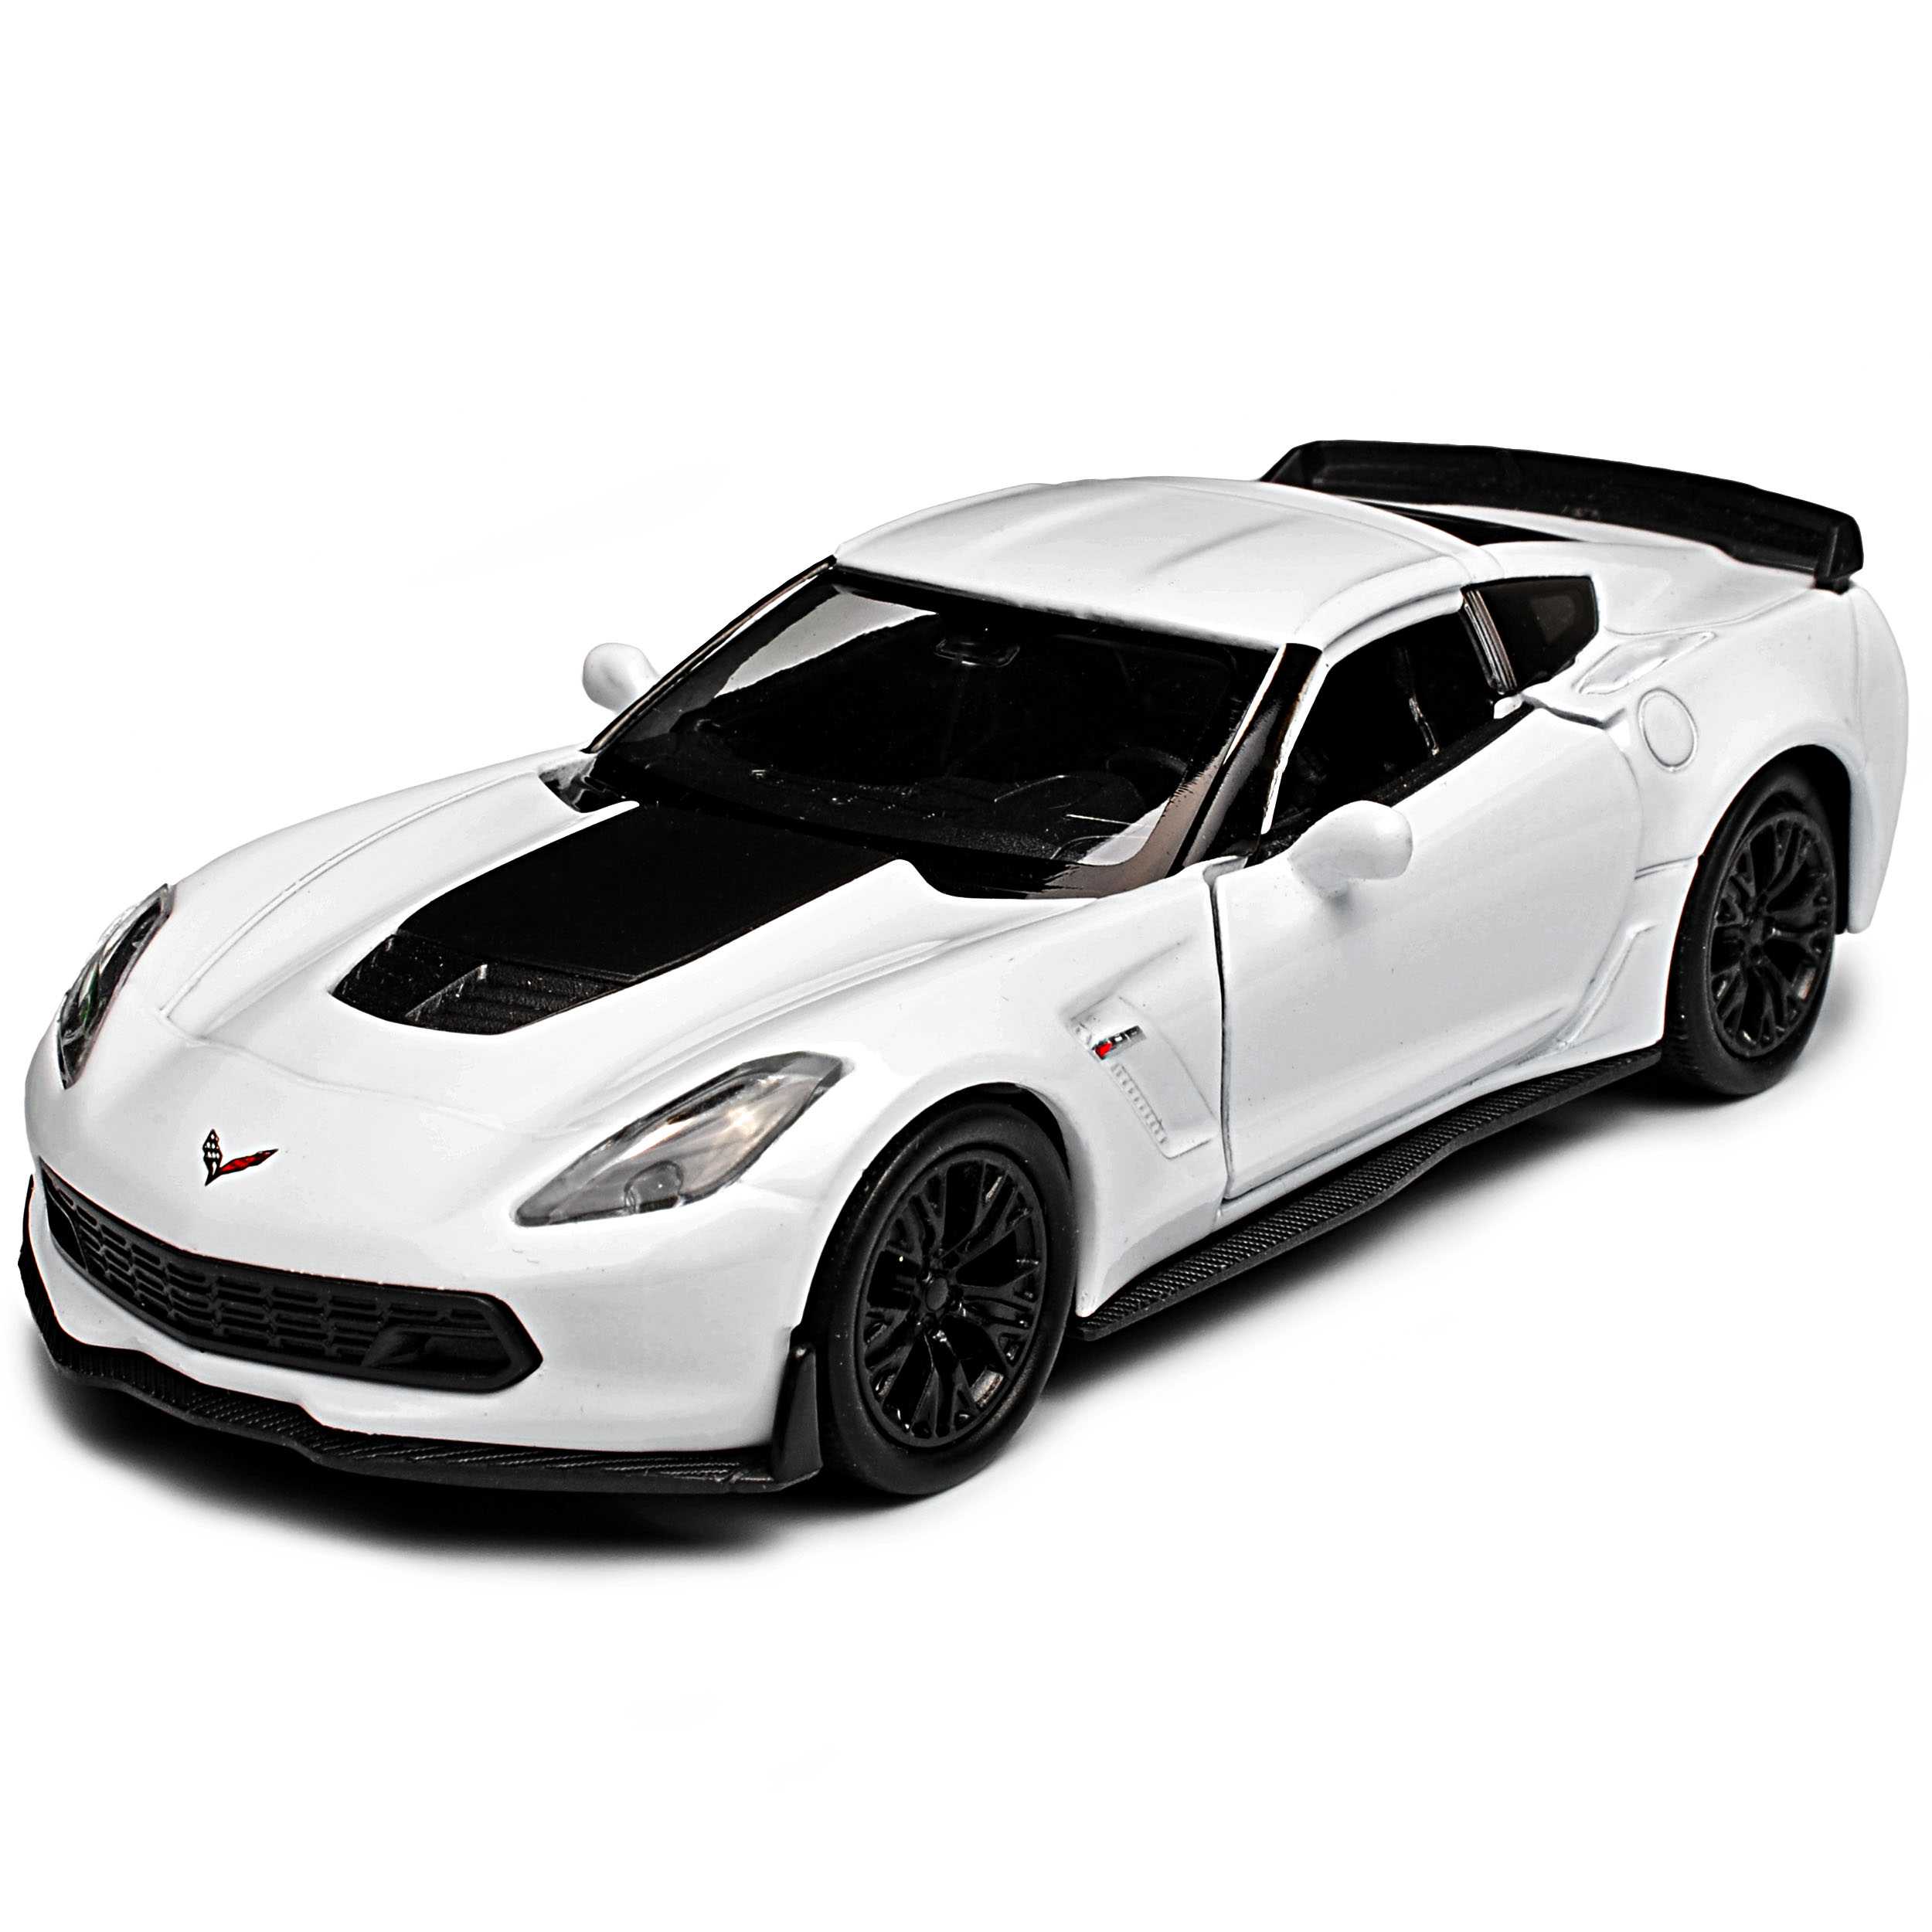 Chevrolet Corvette c7 z06 Coupe blanco con negro a partir de 2013 ca 1//43 1//36-1//46 we...